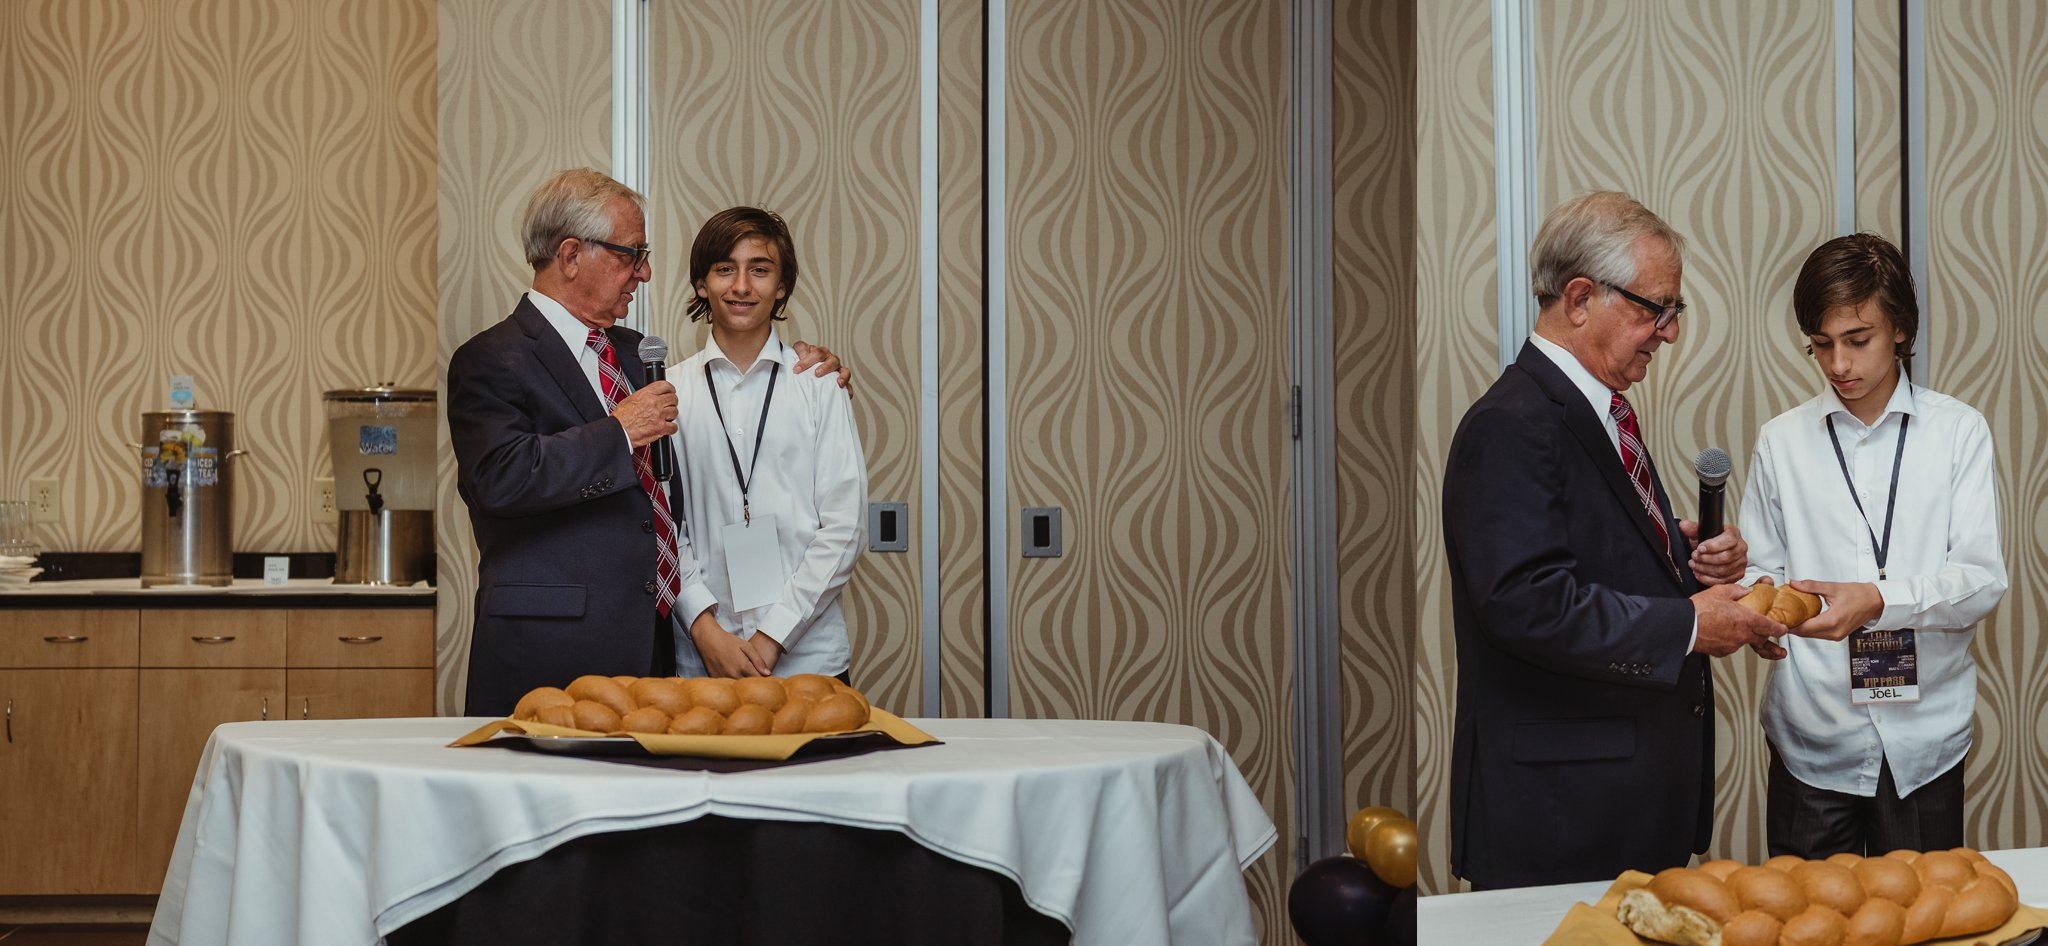 Joel and his Grandfather gave the blessing before the dinner at his mitzvah celebration party at Embassy Suites in Raleigh, North Carolina, images by Rose Trail Images.